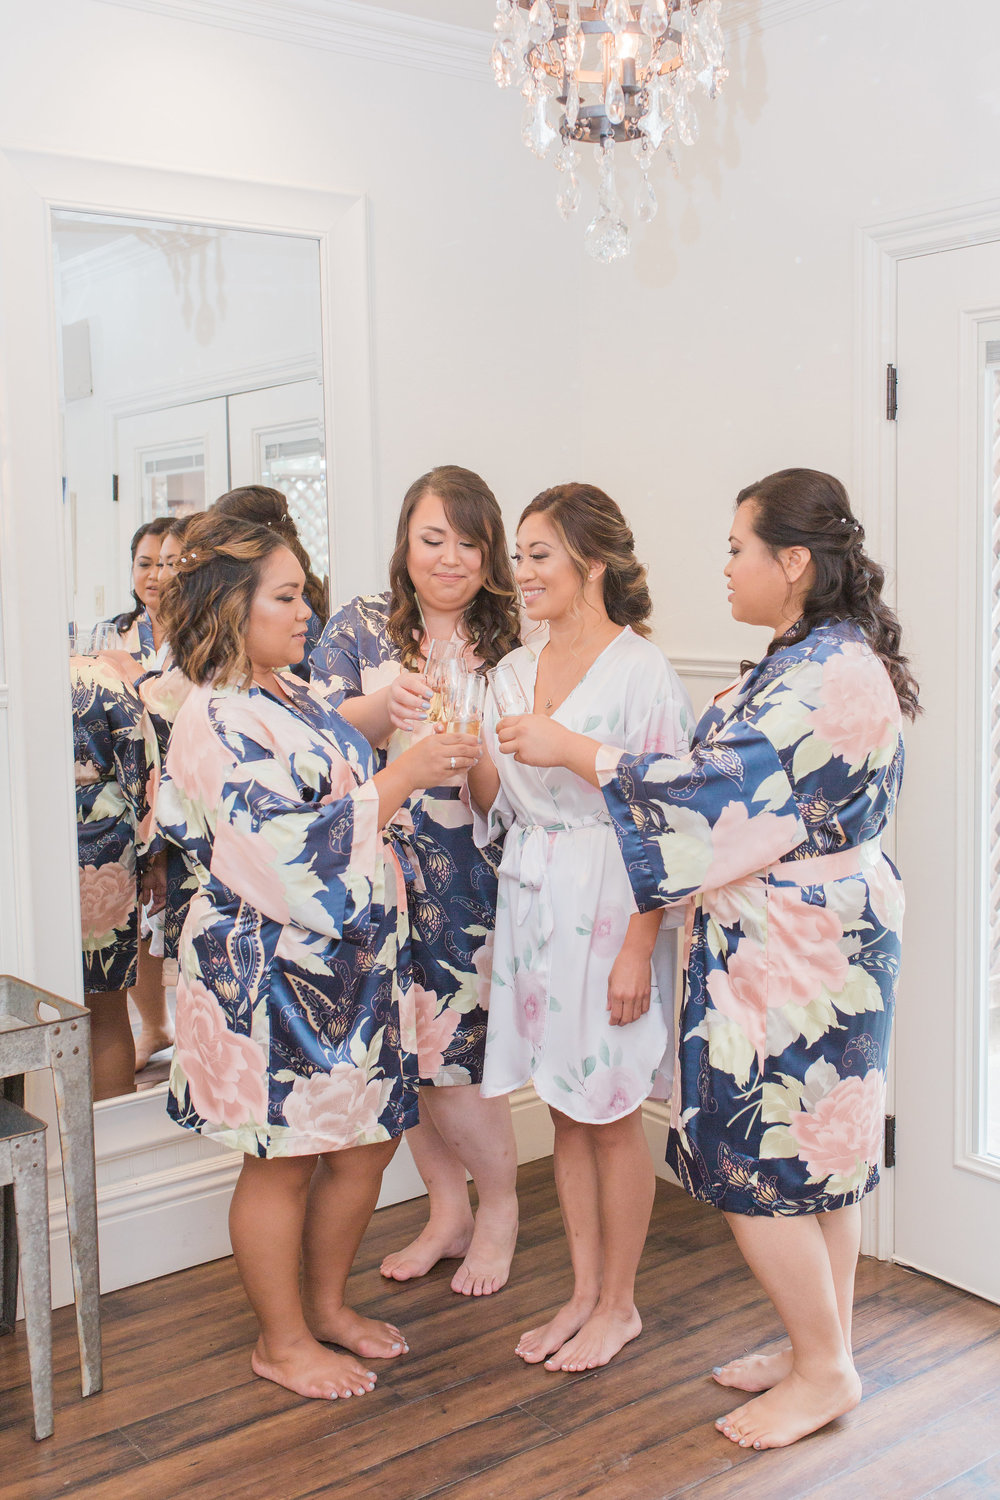 Satin Bridal robes are the perfect gifts and they look amazing in your getting-ready photos. Cheers to the Bride - to - Be!